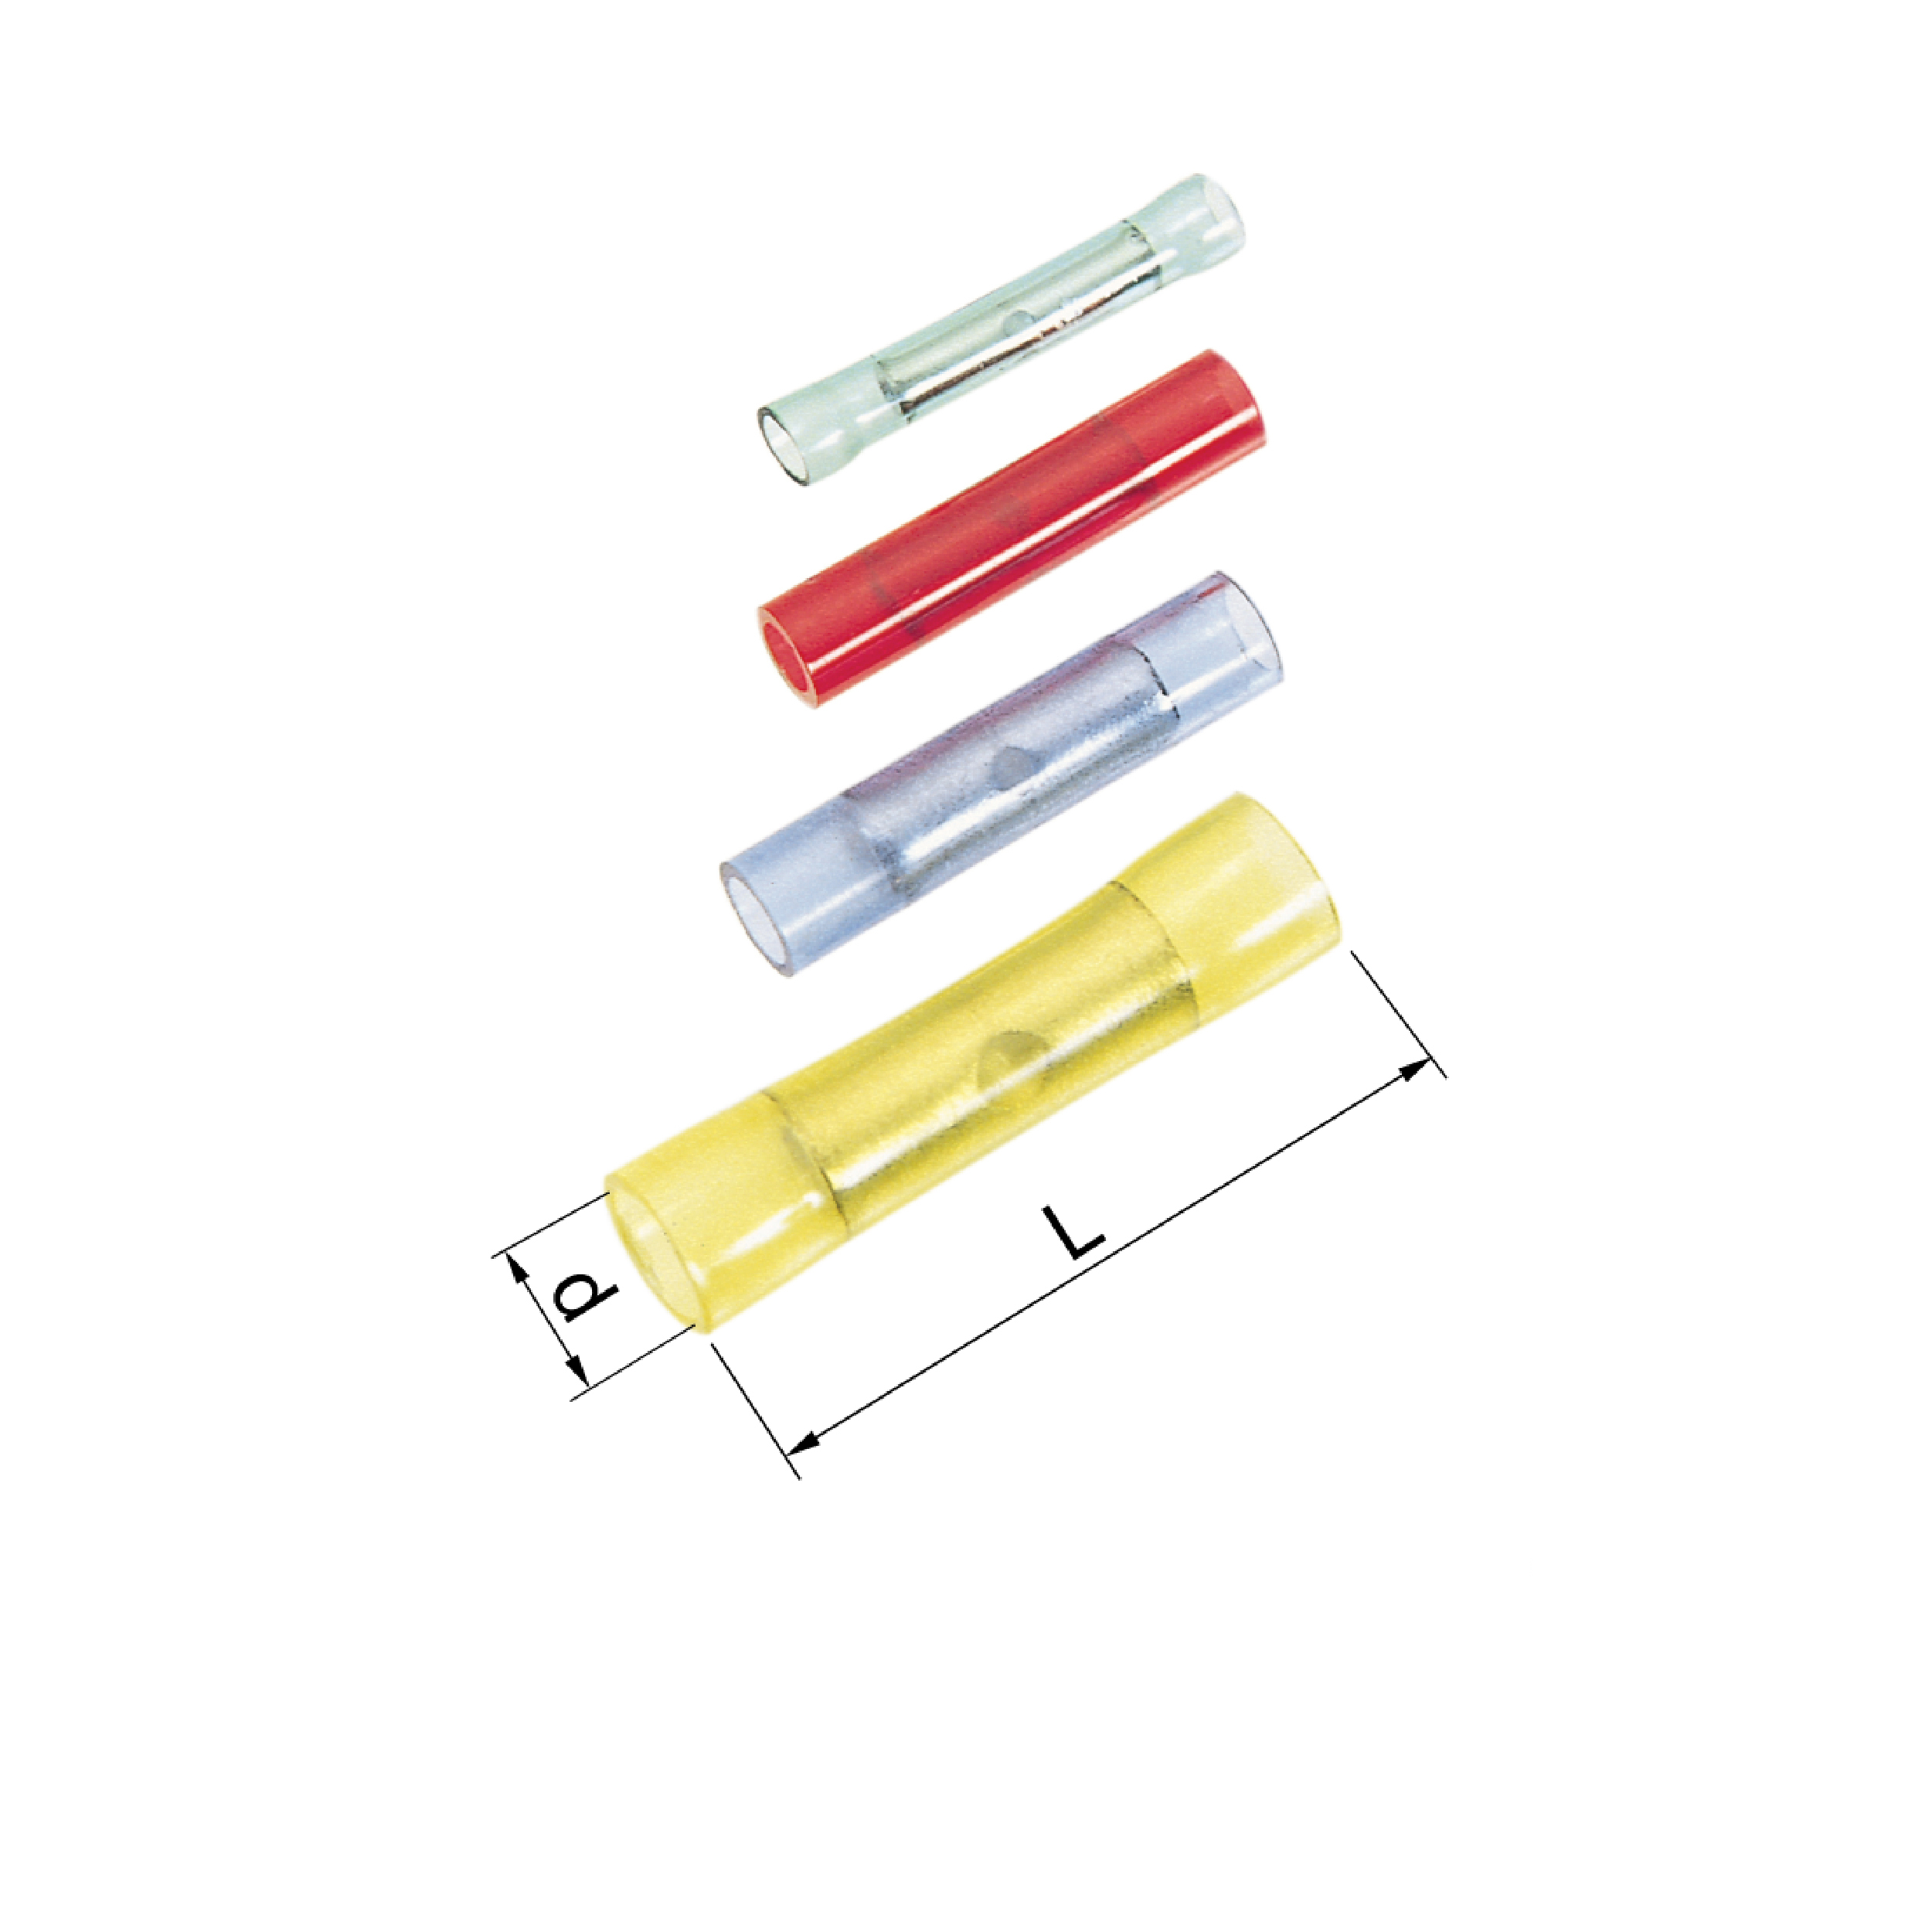 Elpress Pre Insulated Through Connectors 0.25-6mm² Halogen Free